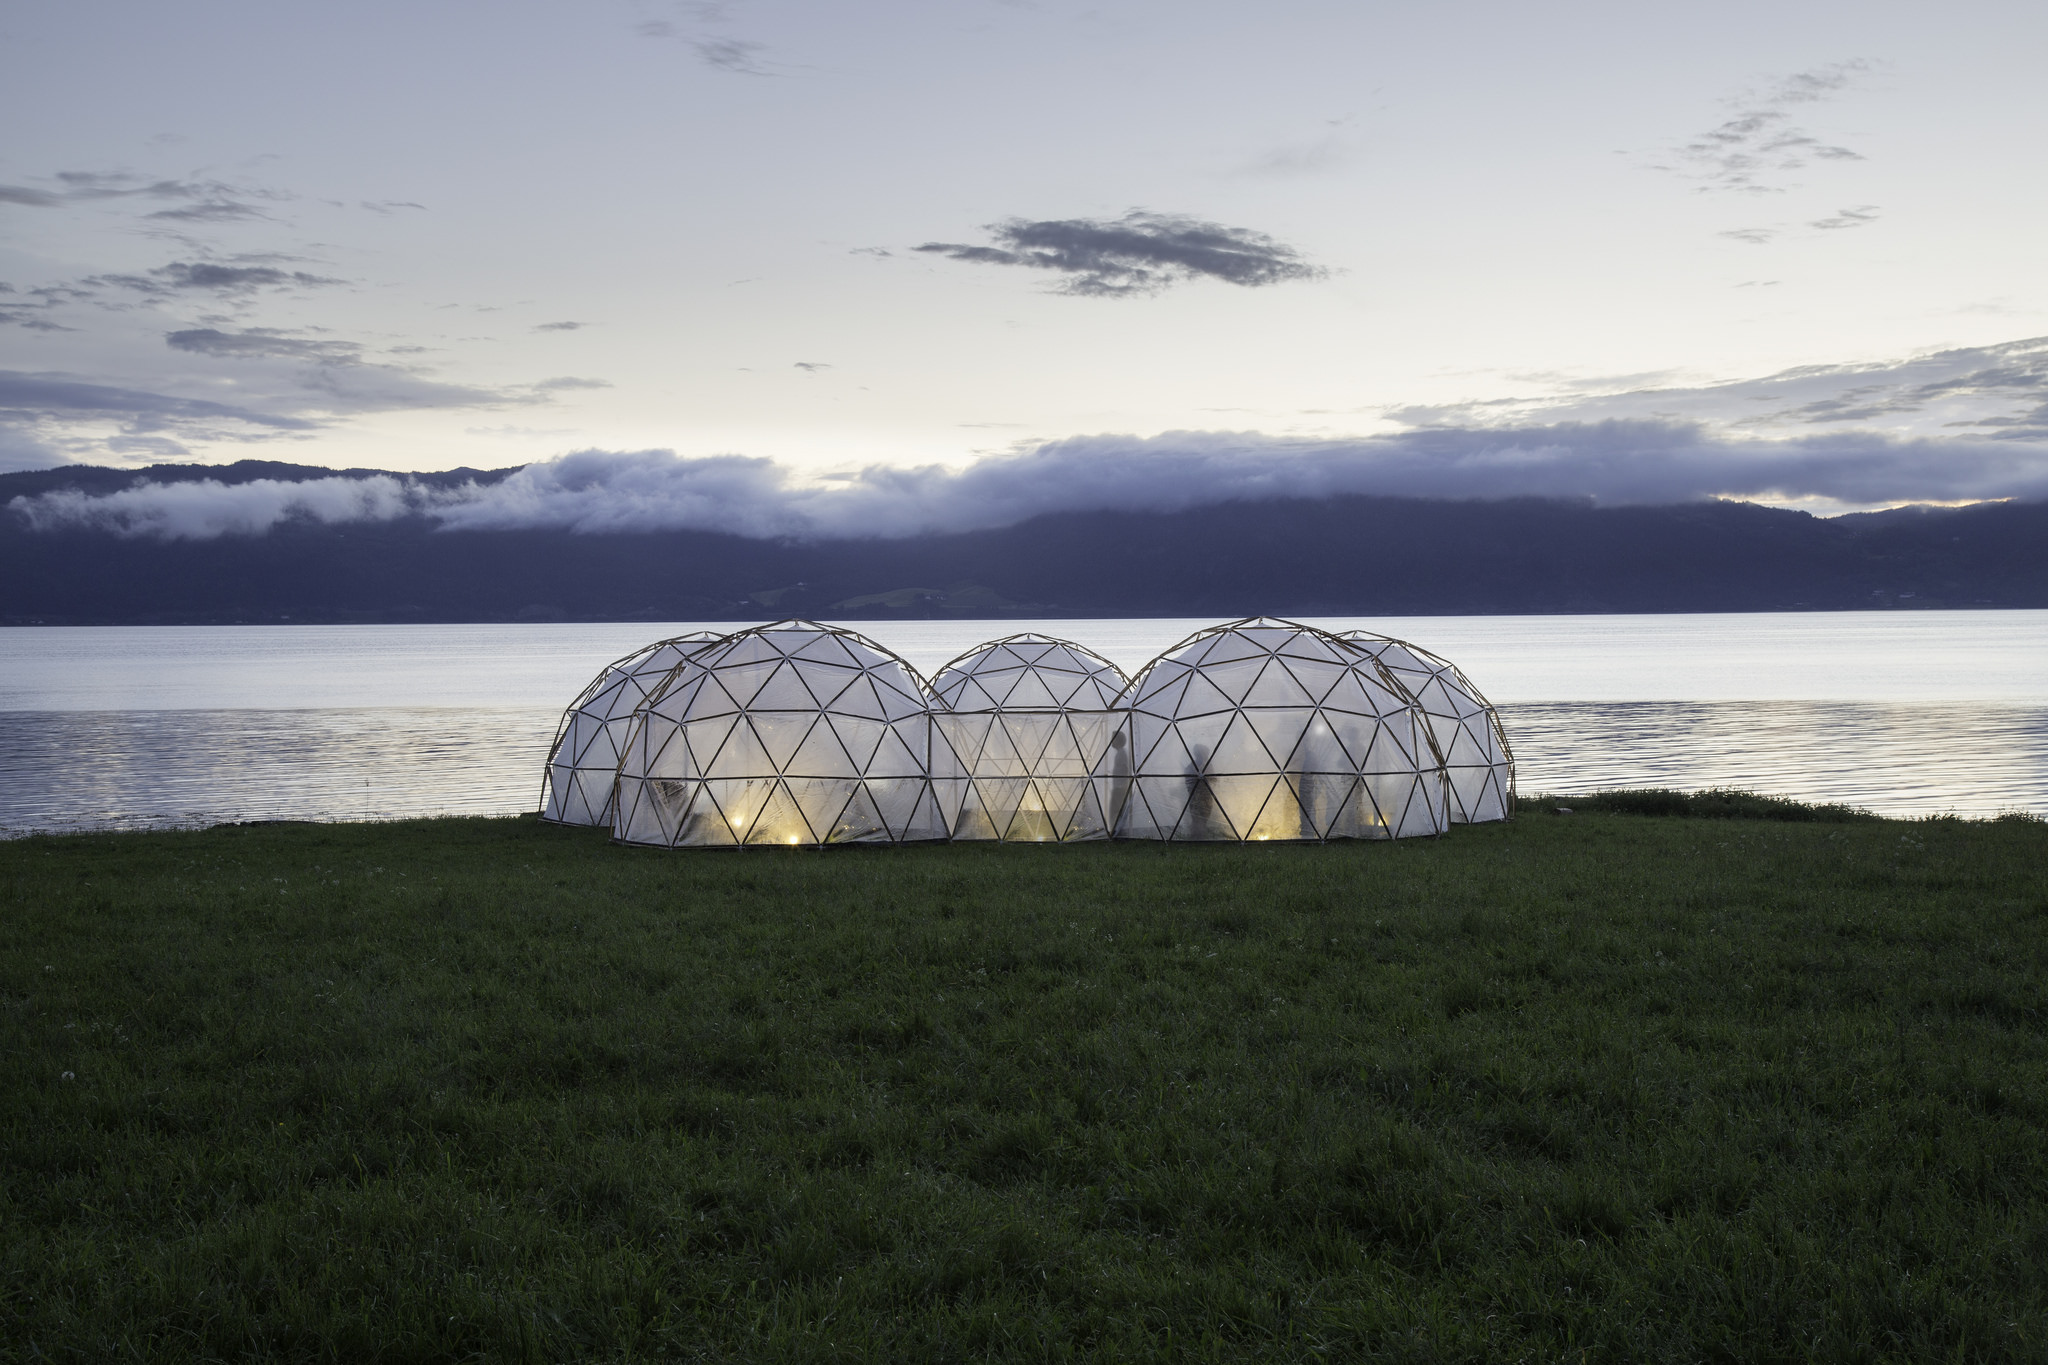 The Pollution Pods in Norway